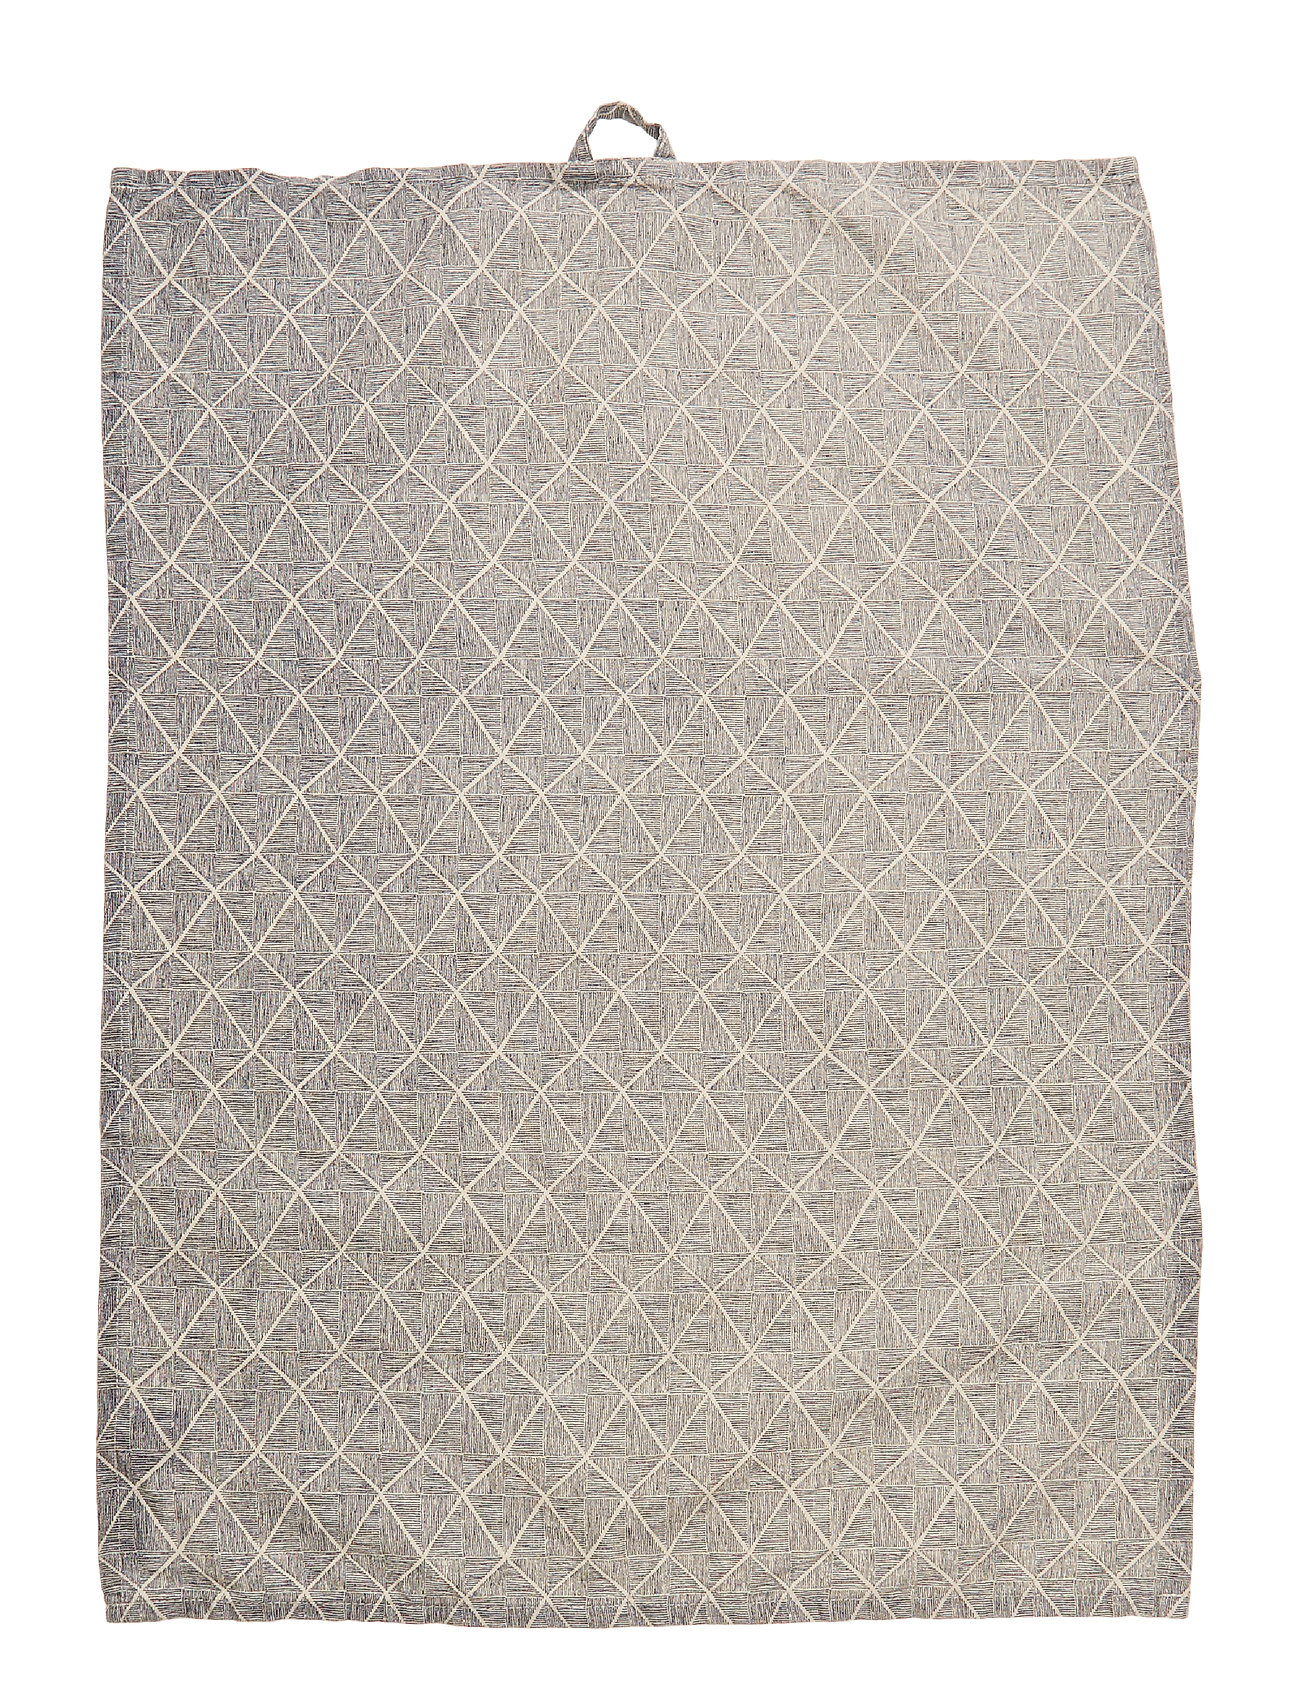 ombre Towel Rock Kitchen Hermanlunar BlueGripsholm 5j4A3RL